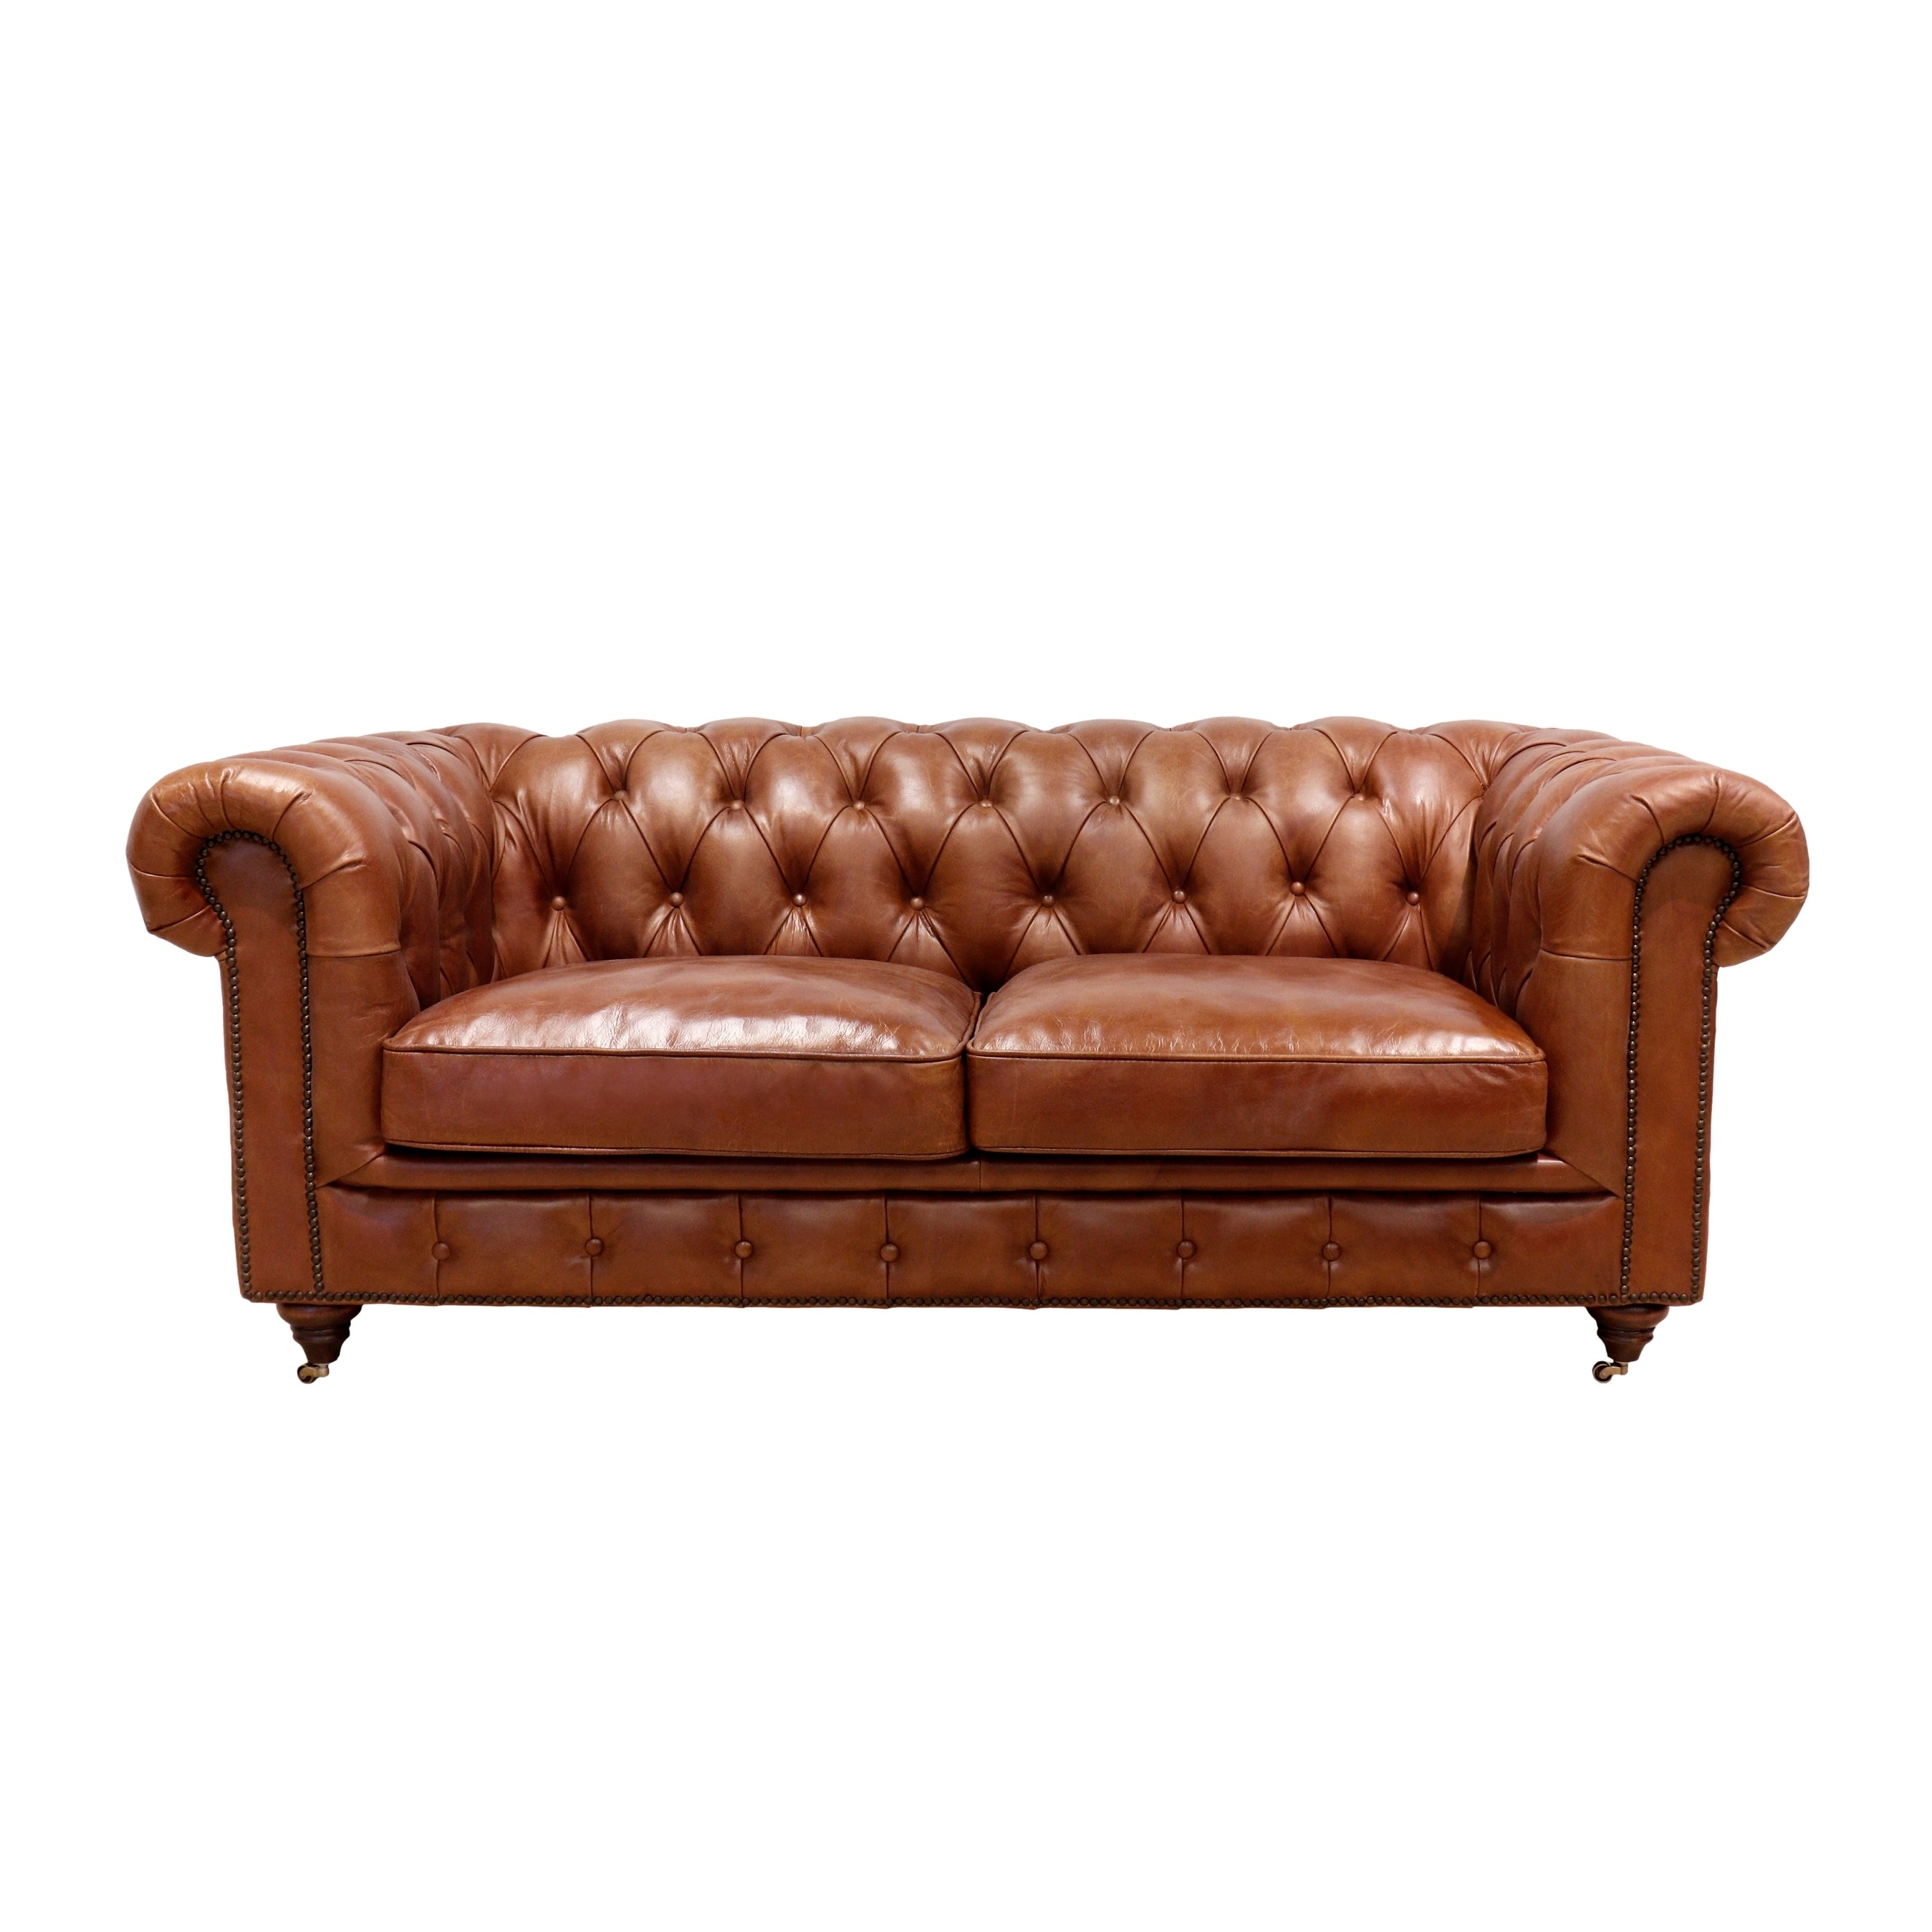 Buy Brown, Leather Sofas & Couches Online at Overstock | Our ...